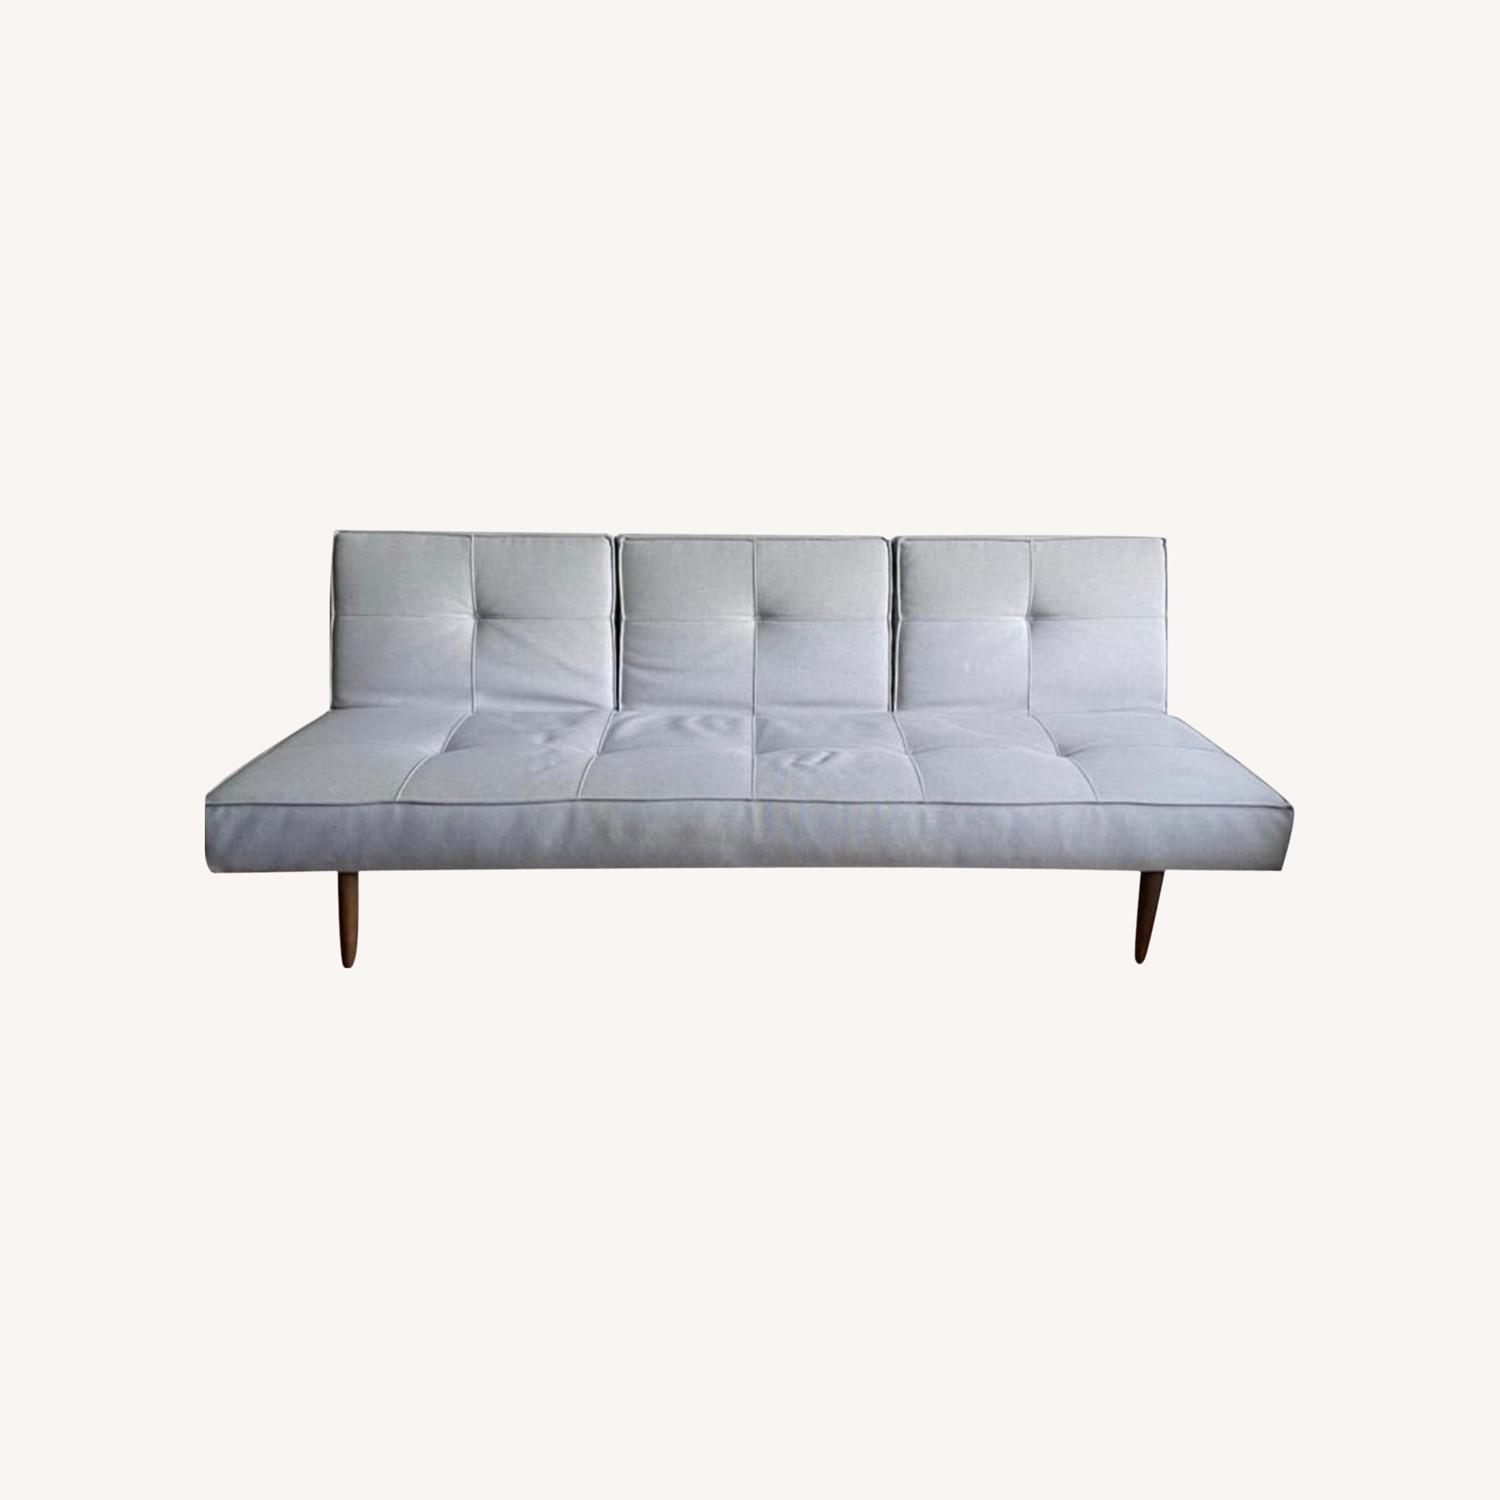 Room and Board Modern Fold Out Bed- Sofa - image-0